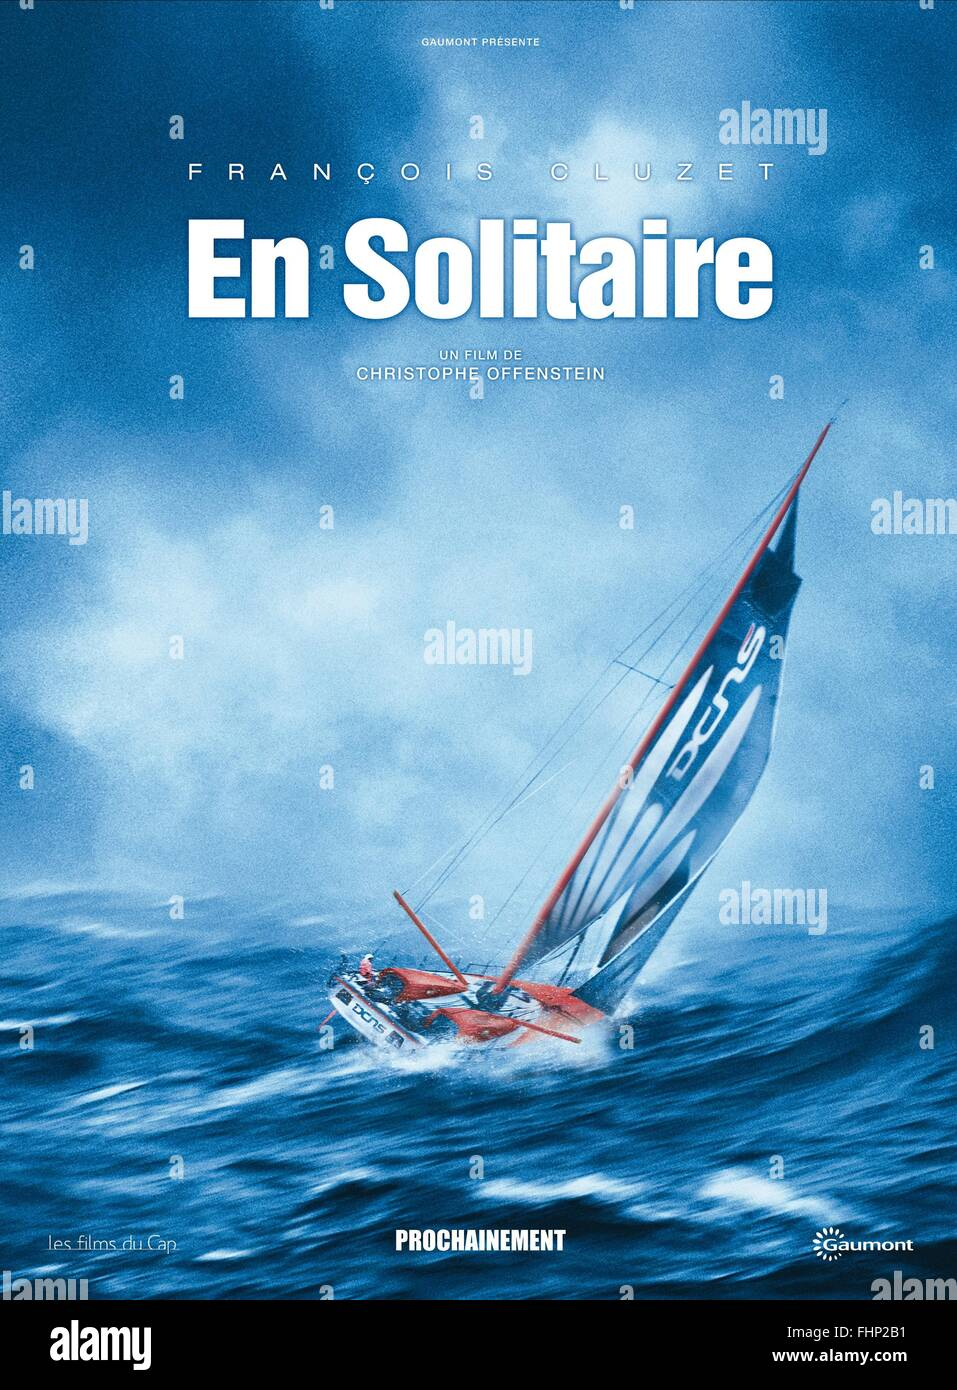 YACHT POSTER TURNING TIDE; EN SOLITAIRE (2013) - Stock Image